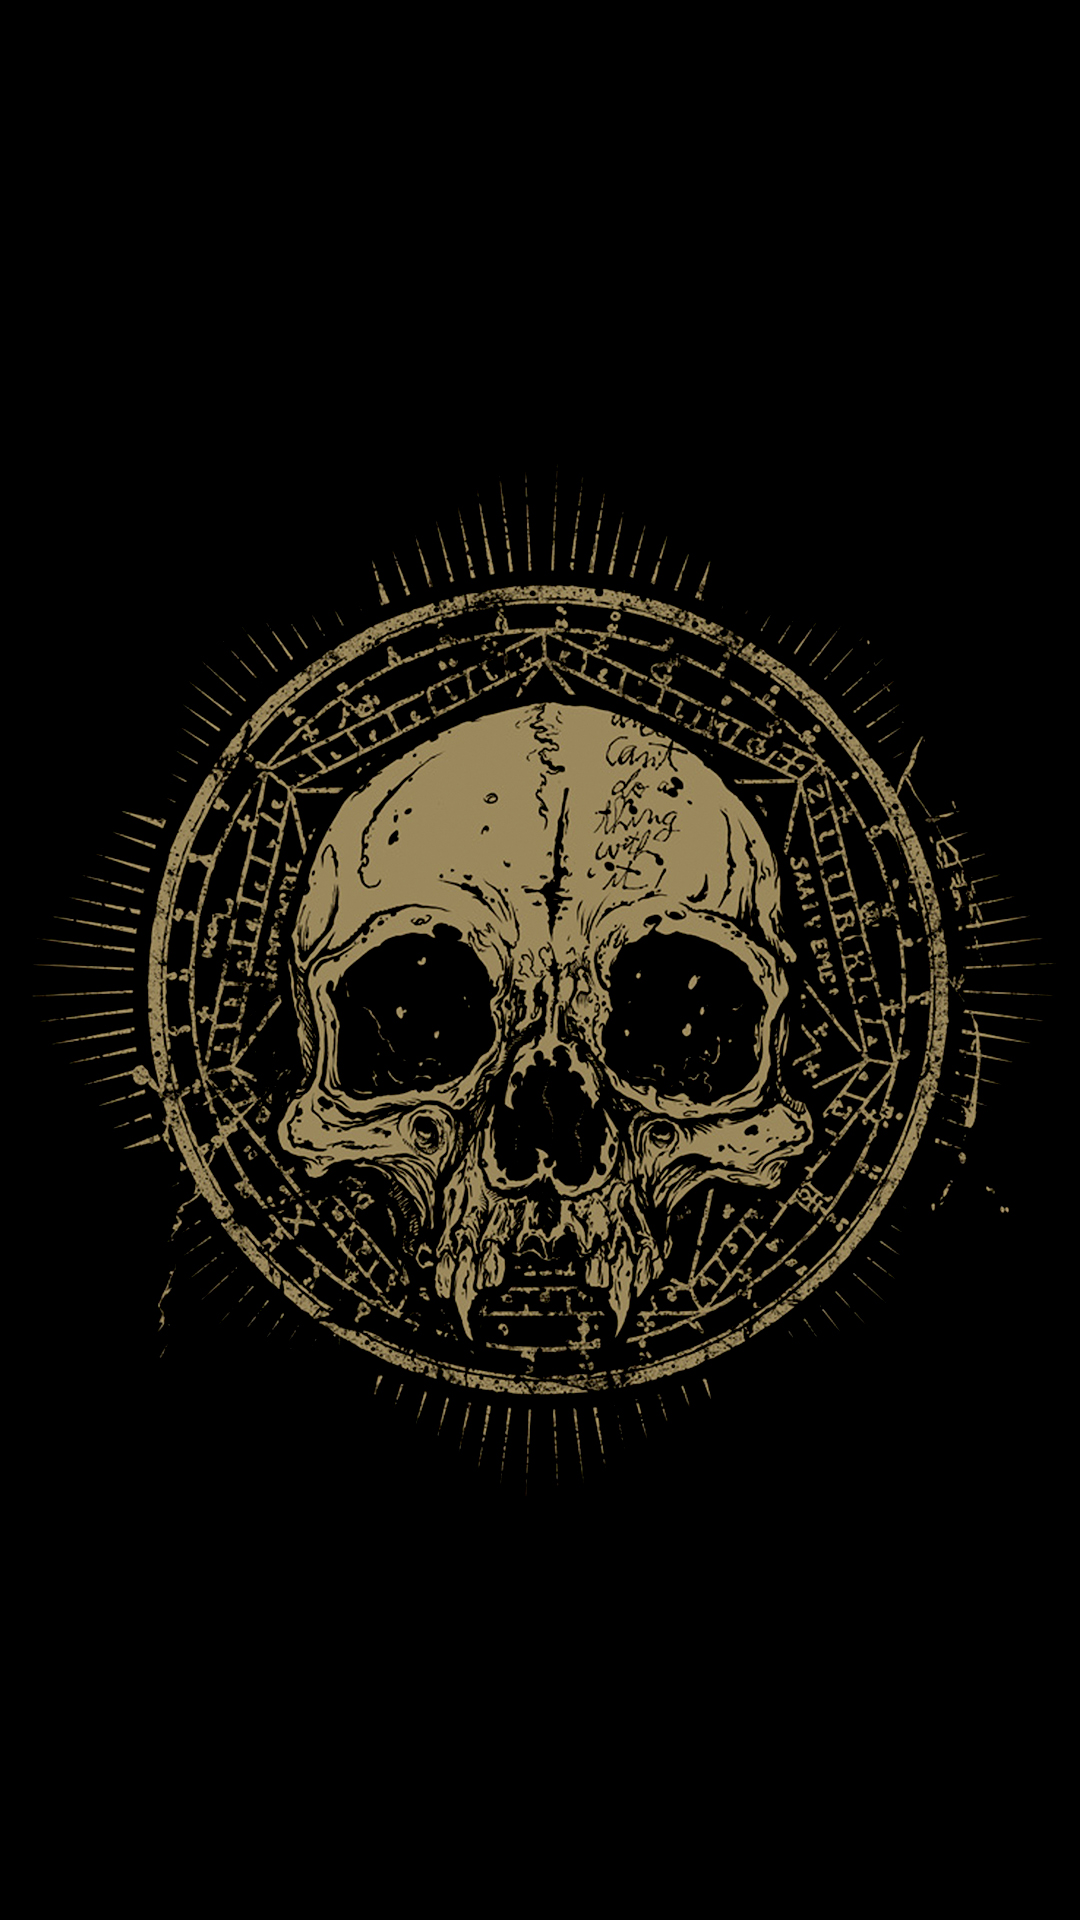 Gold Skull Wallpaper - Iphone Wallpaper Skull , HD Wallpaper & Backgrounds